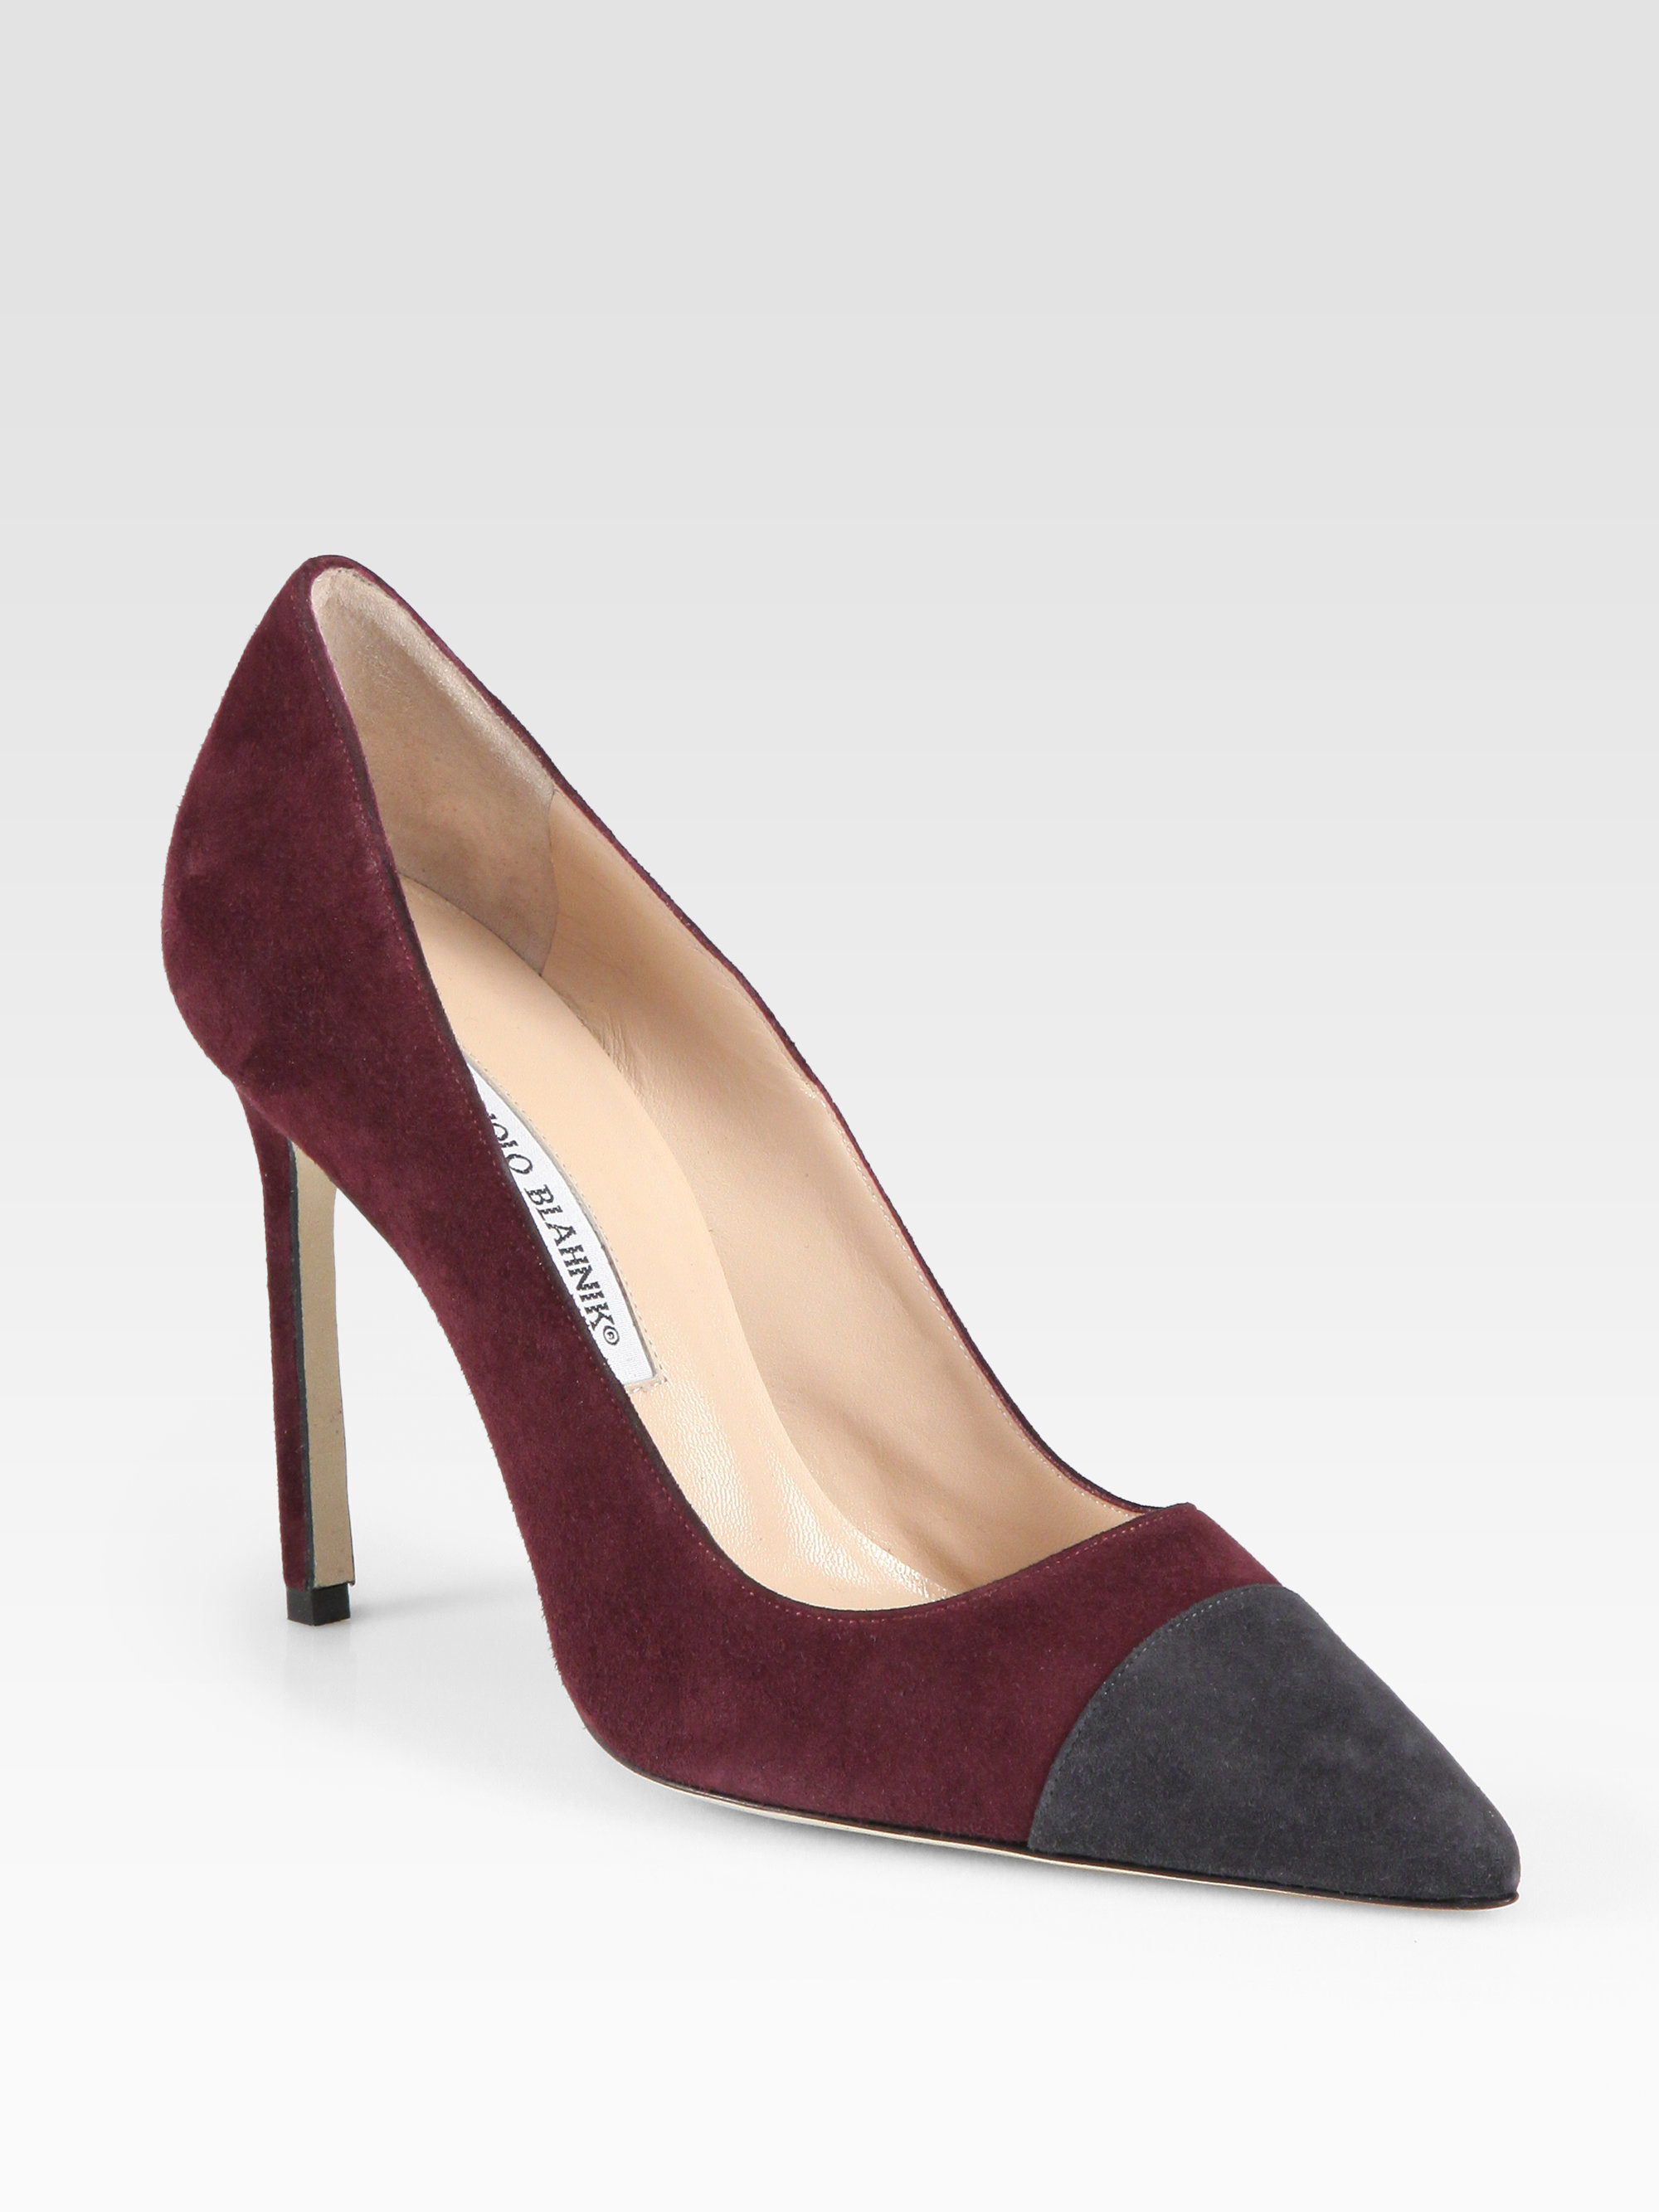 Manolo blahnik bipunta suede pumps in purple lyst for Who is manolo blahnik